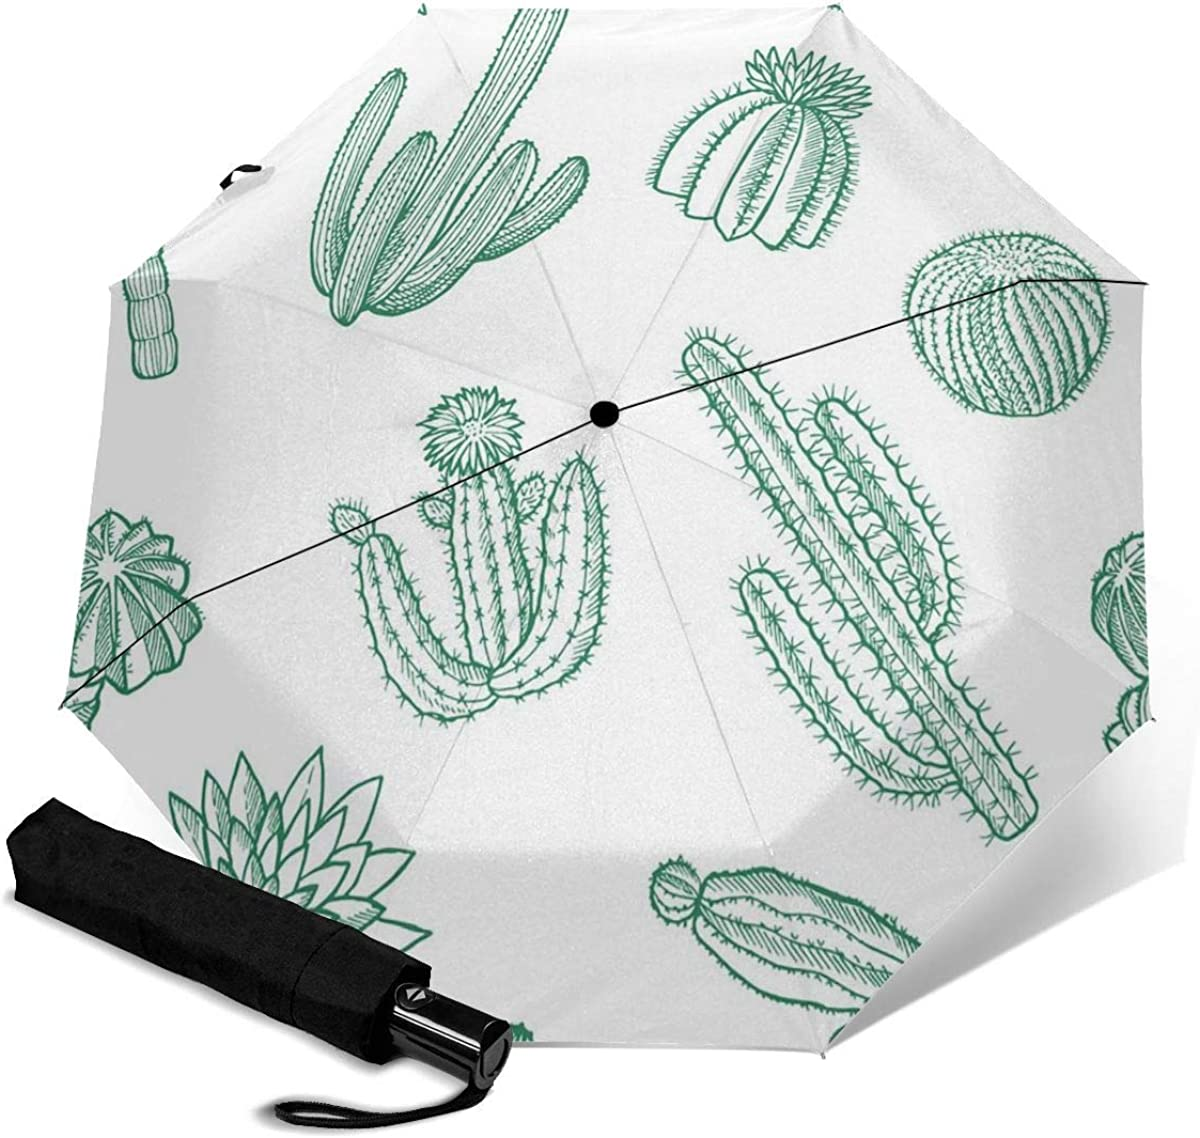 Green Fleshy Cactus And Other Plants Compact Travel Umbrella Windproof Reinforced Canopy 8 Ribs Umbrella Auto Open And Close Button Customized